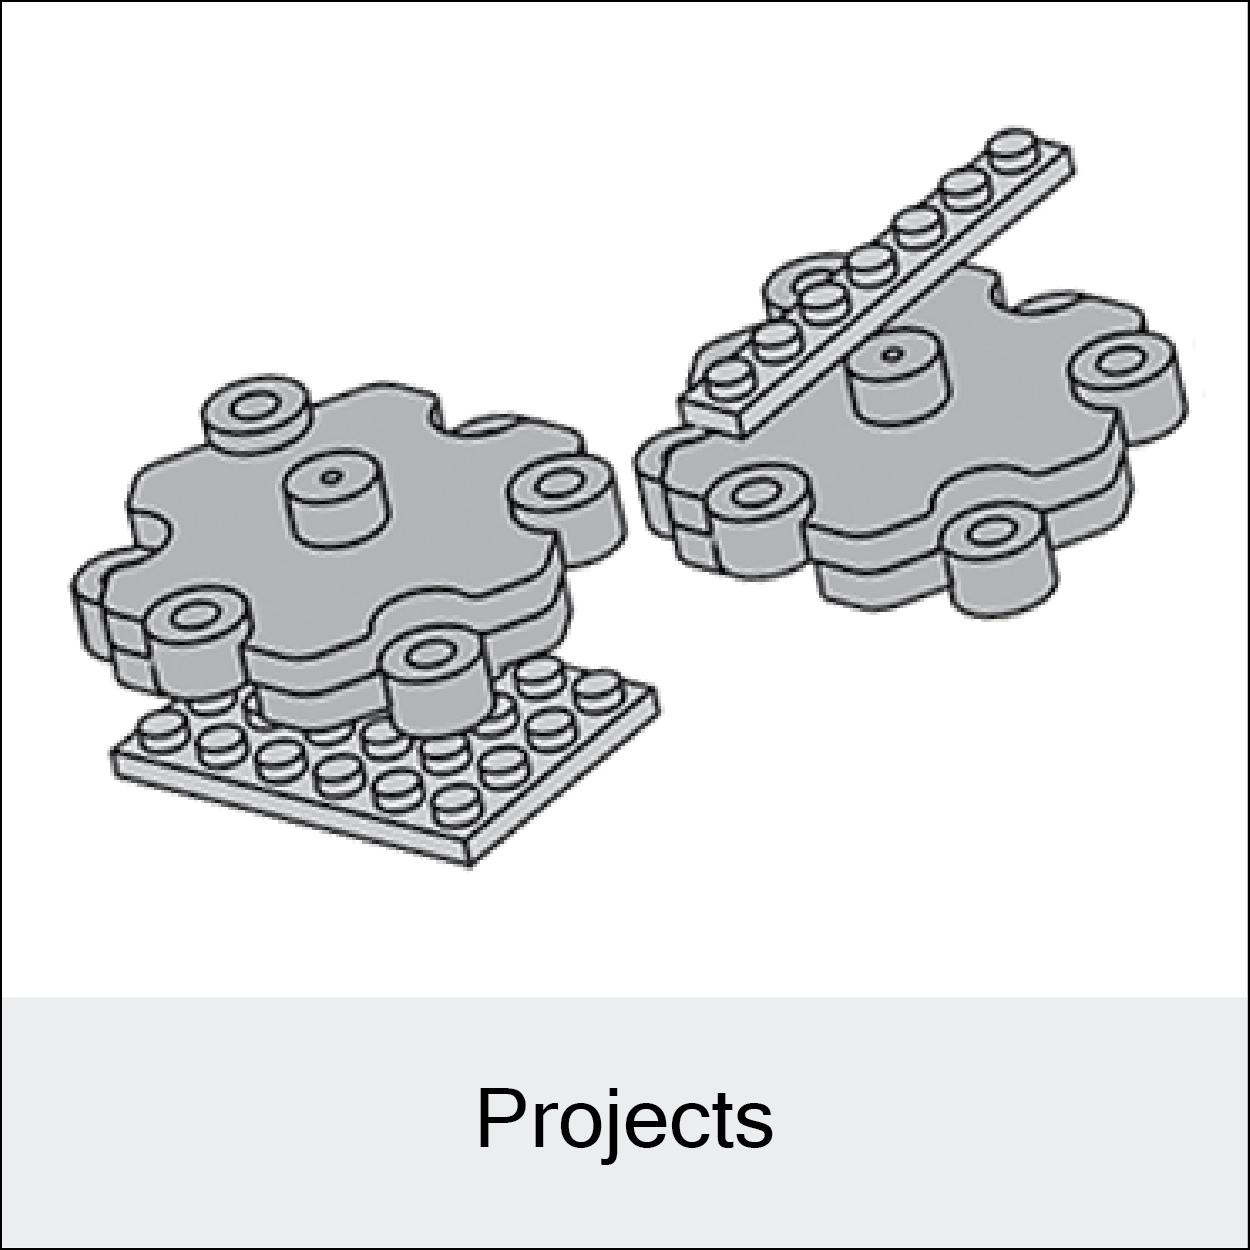 projects_logo-01.png